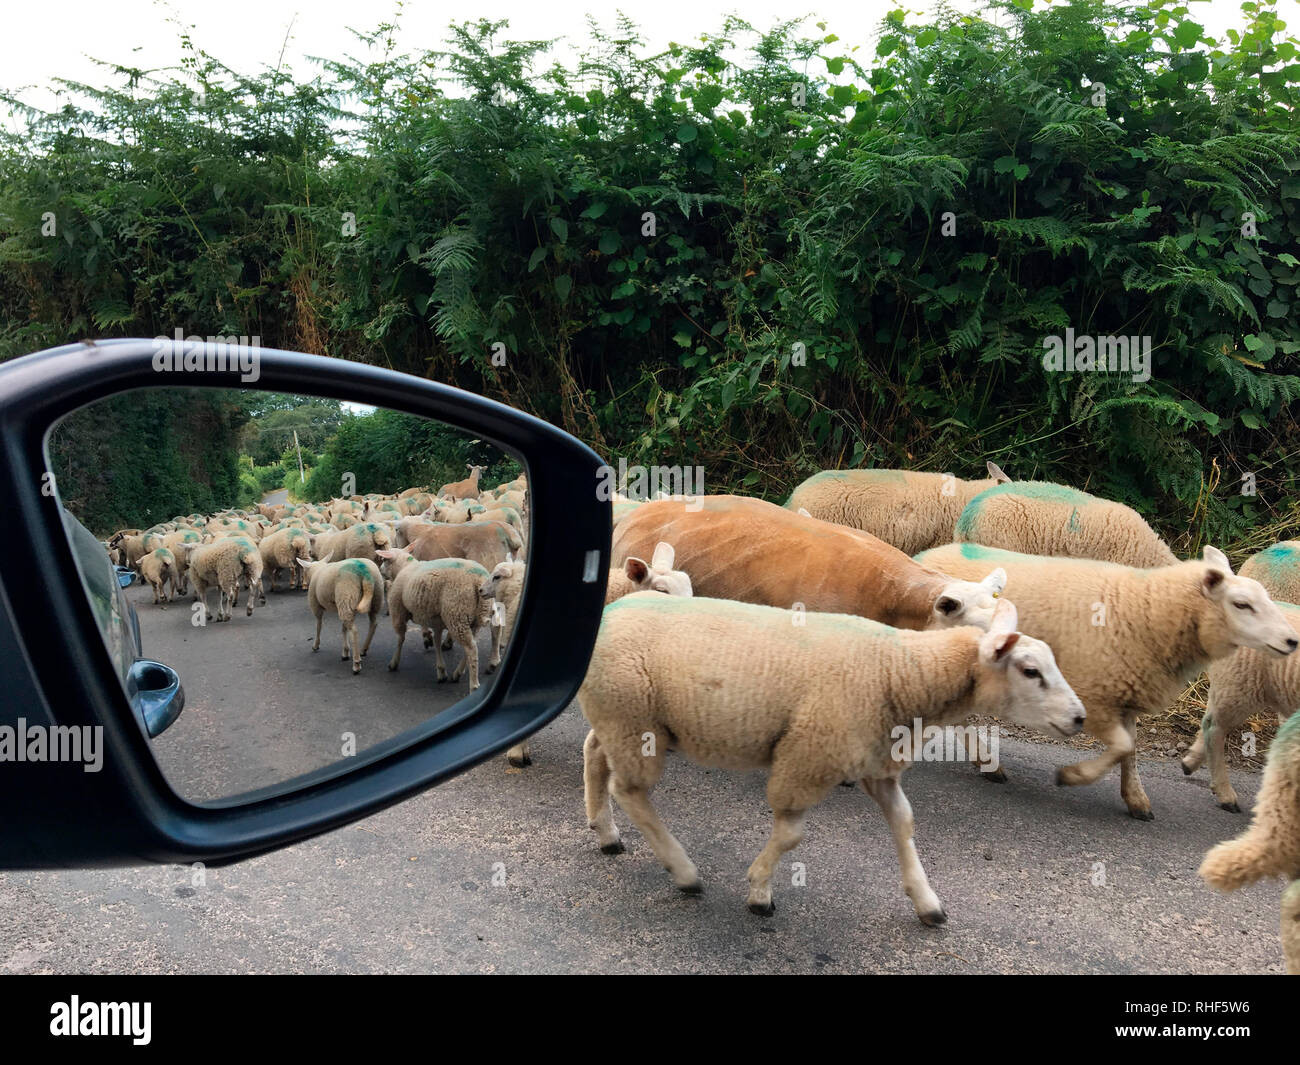 Flock of sheep being moved to new grazing on rural road near Hay-on-Wye, Powys, Wales, UK - Stock Image